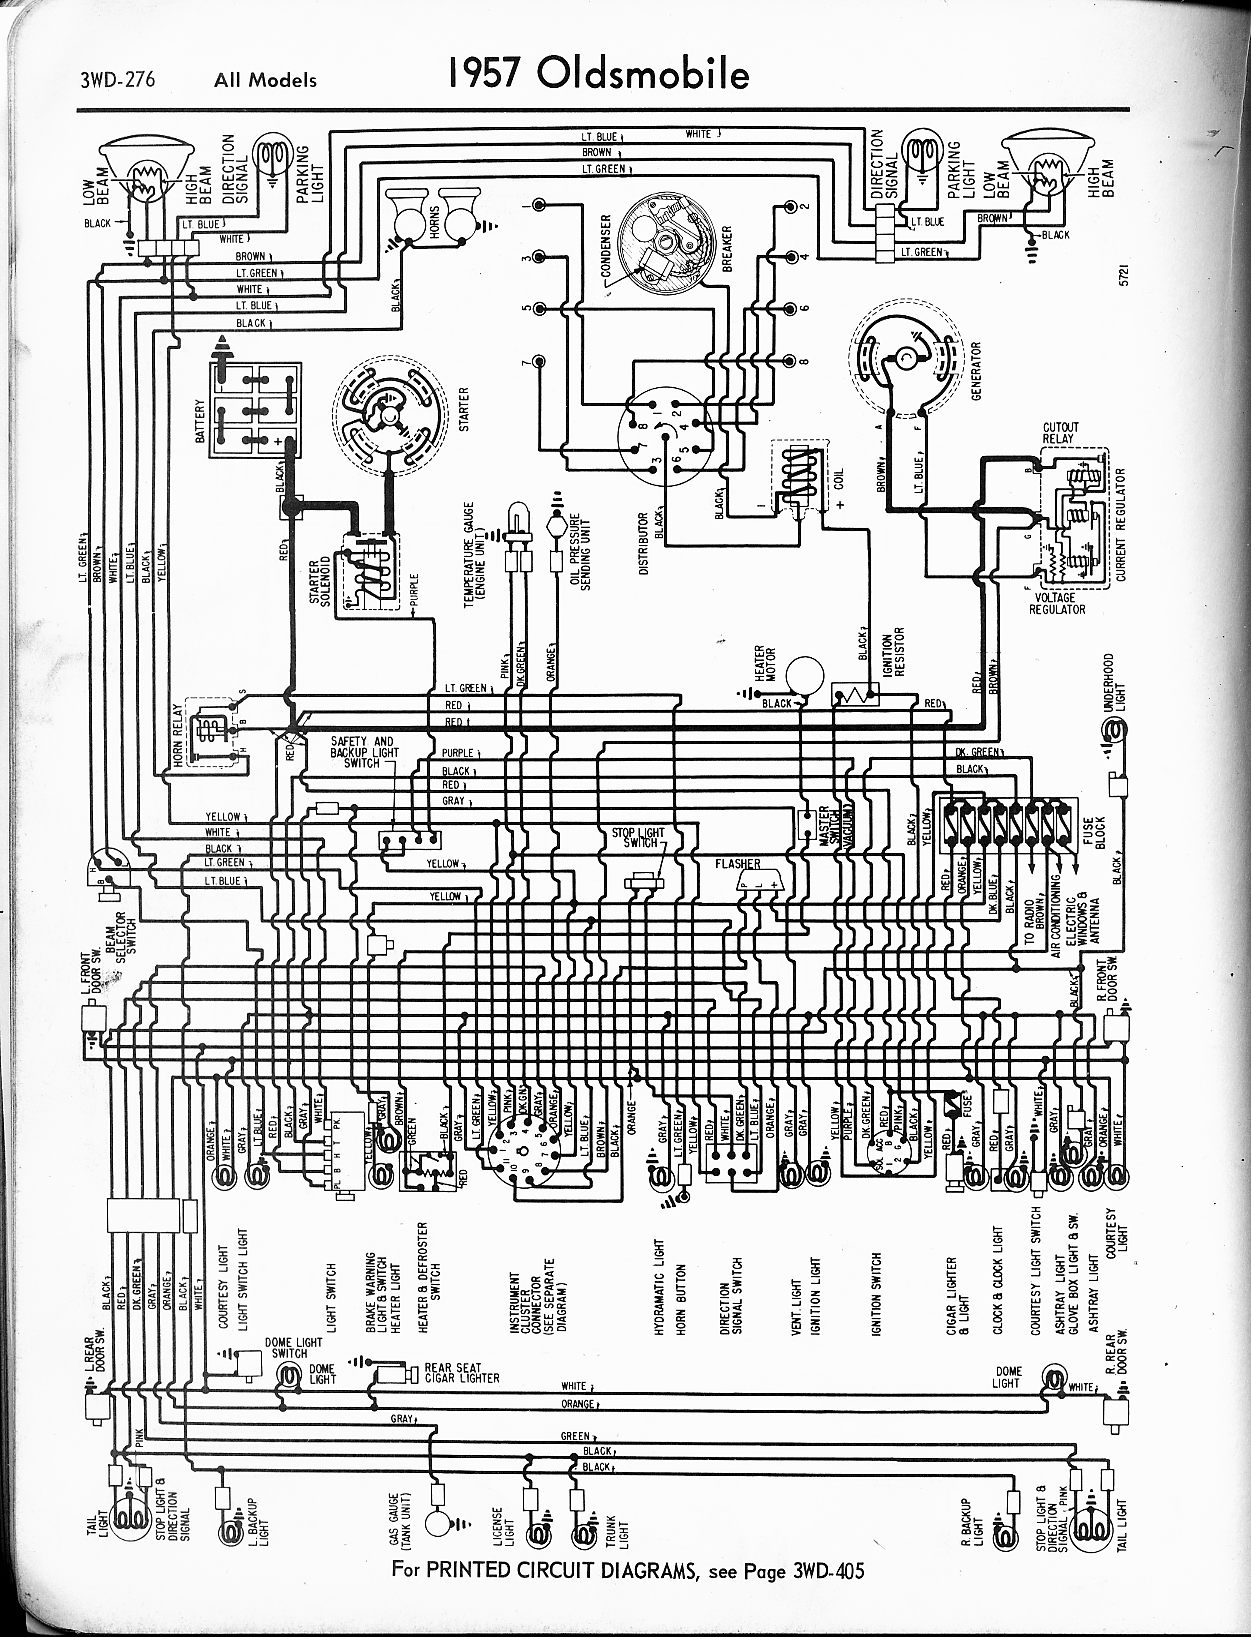 oldsmobile wiring diagrams the old car manual project rh oldcarmanualproject com 1998 Chevy Truck Wiring Diagram 2003 Chevy Truck Wiring Diagram